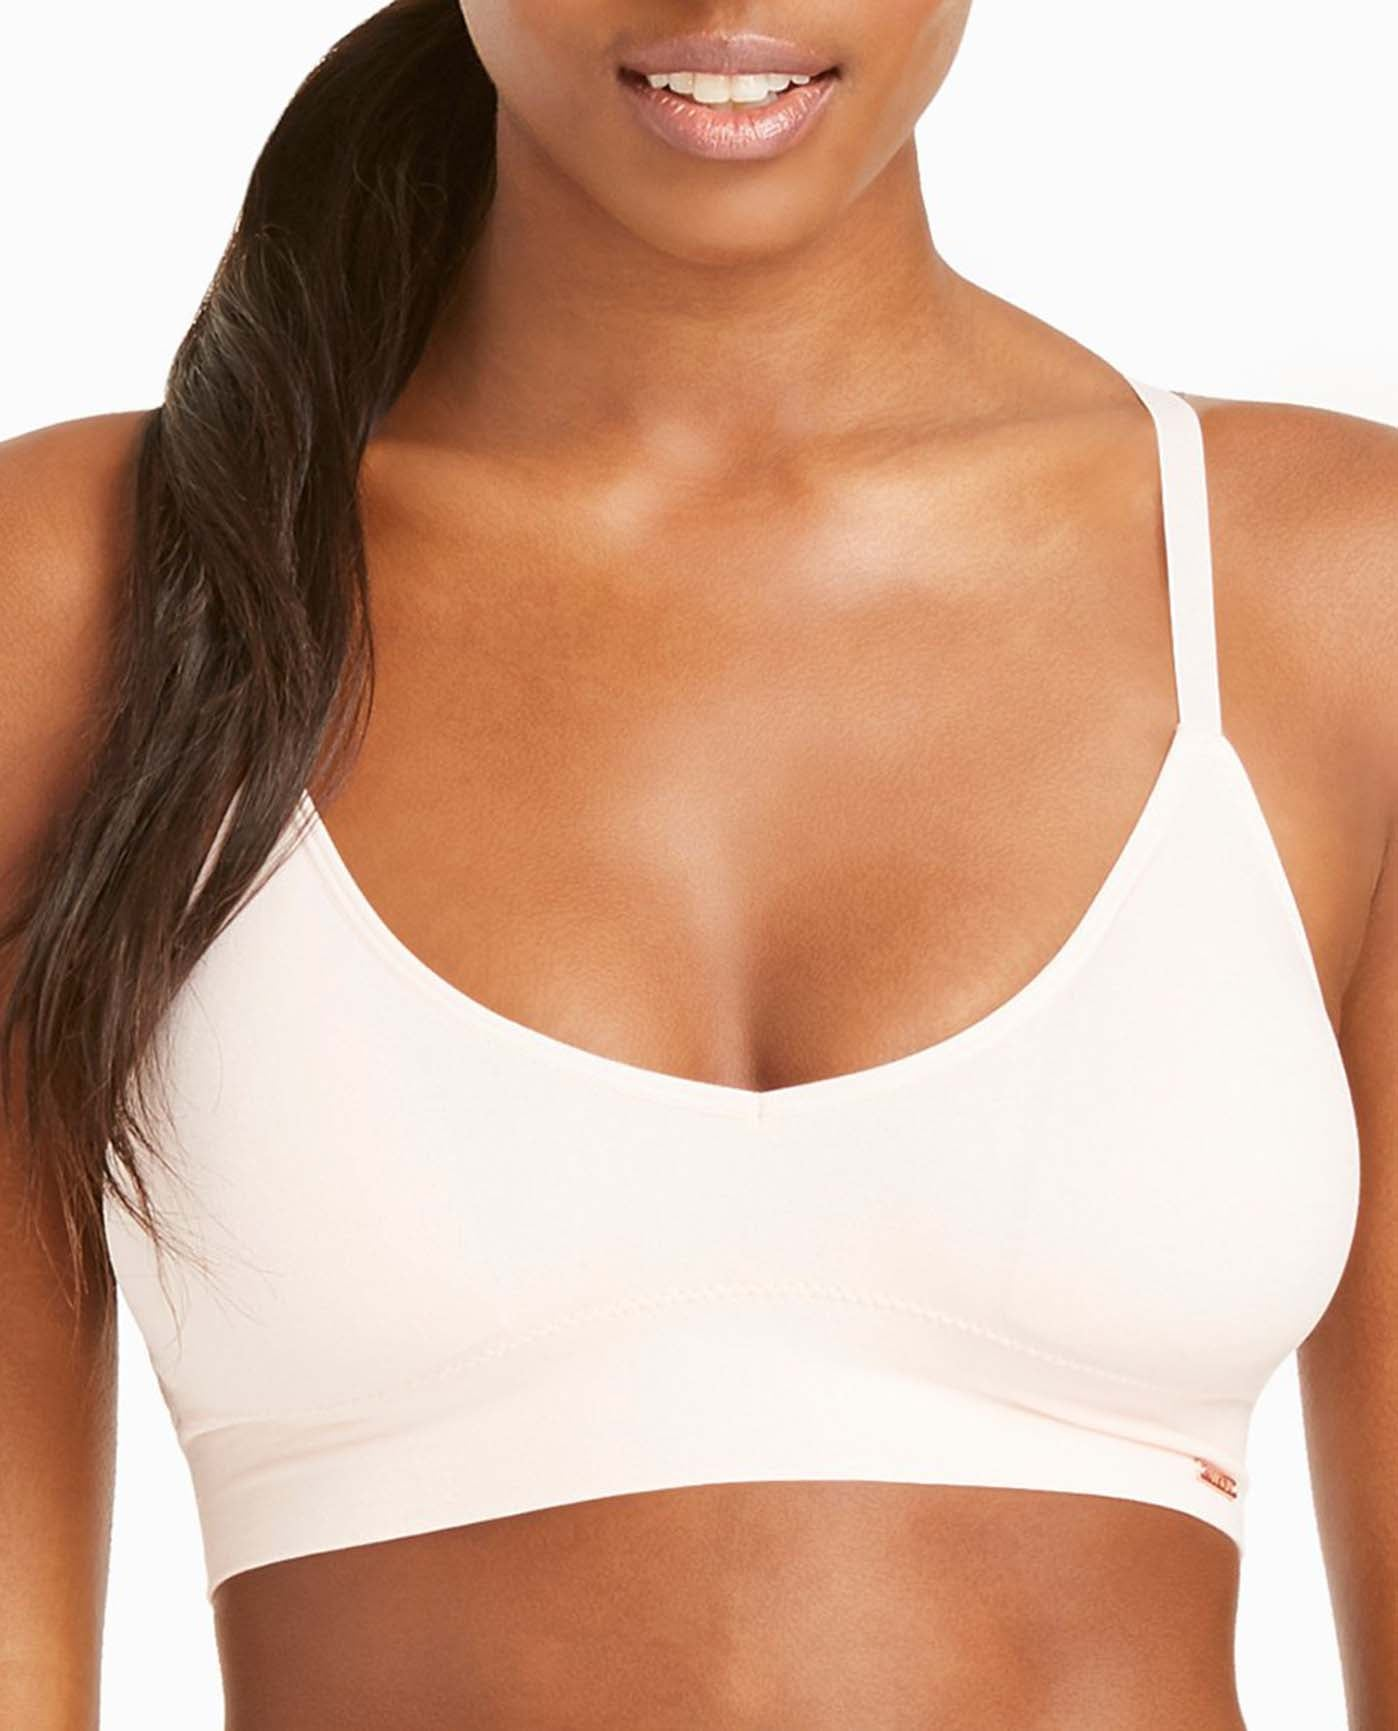 e5e8fbf511876 Women s Crisscross Back Bralette 2-Pack